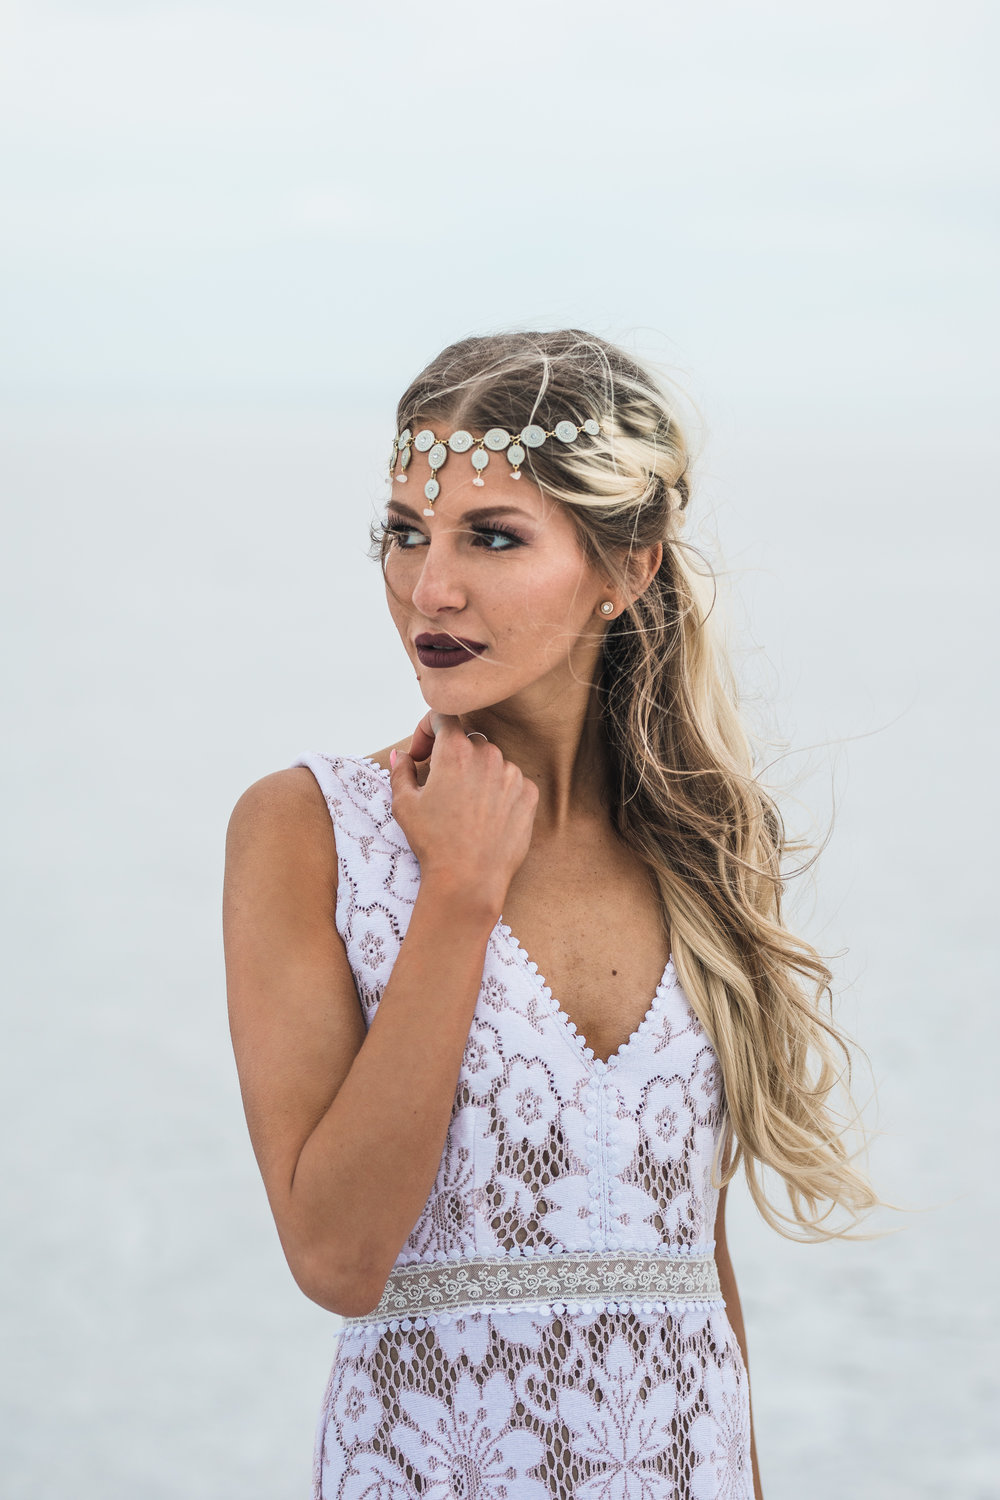 Bridal hair and make up by Hailey Boam Danani Handmade headpiece Saldana Vintage dress Bonneville Salt Flats Elopement